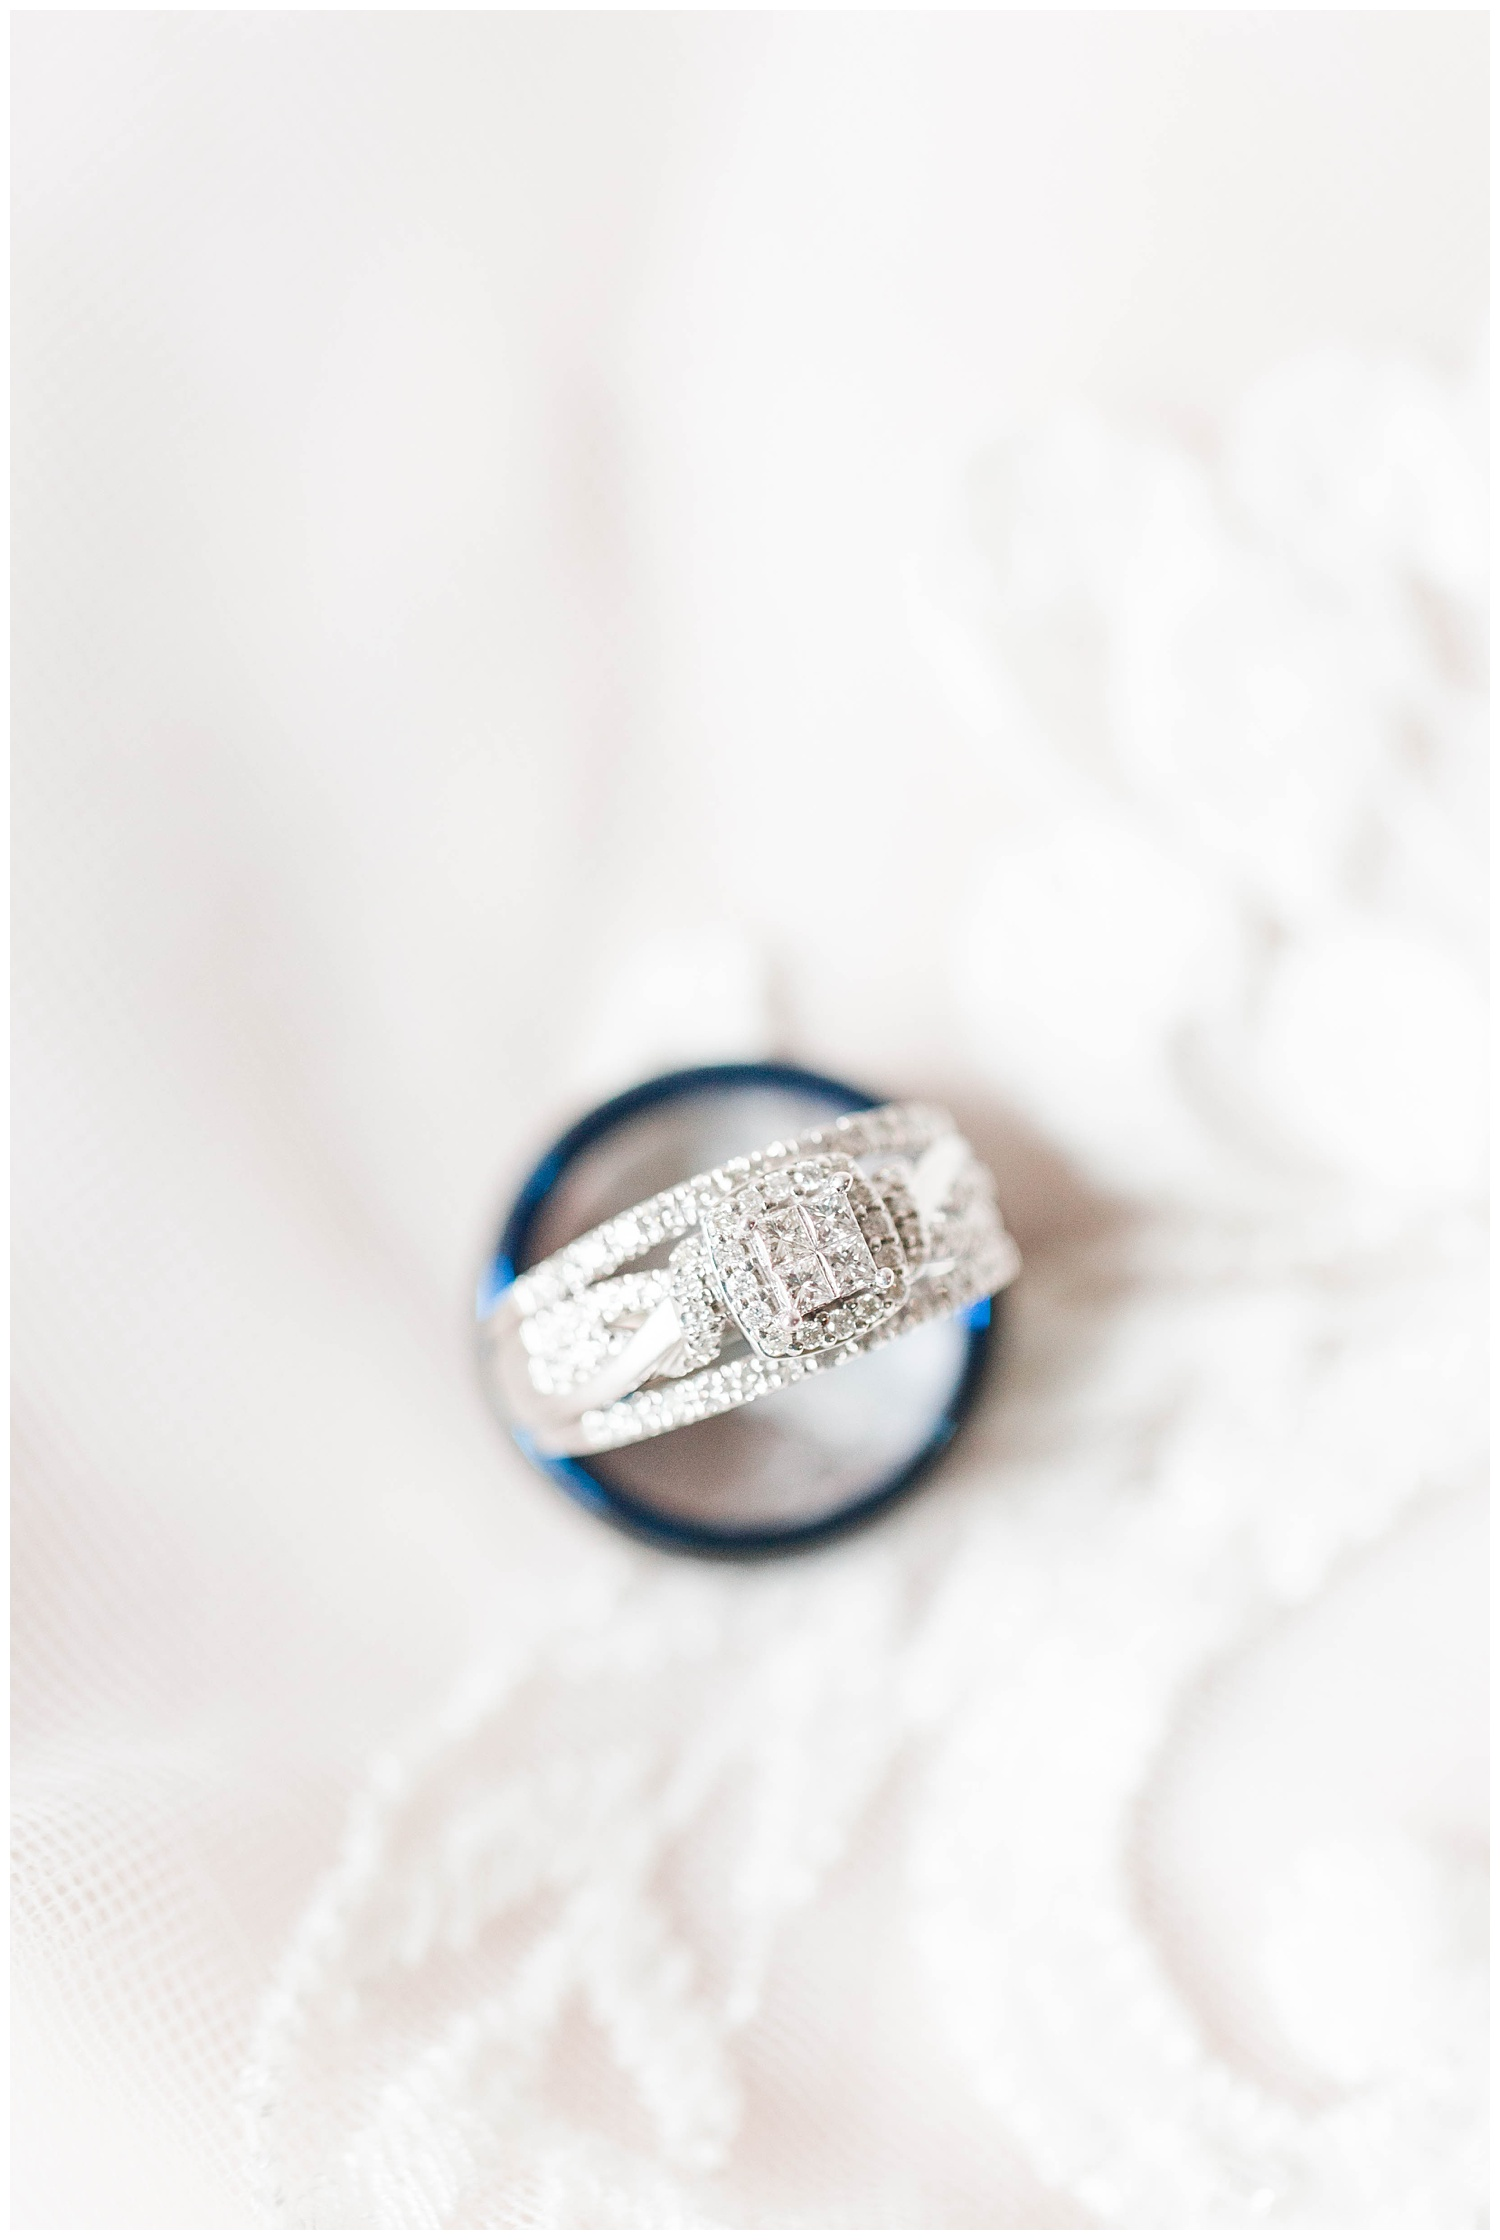 Bridal wedding band and groom's ring delicately placed on the lace of a wedding dress.   CB Studio